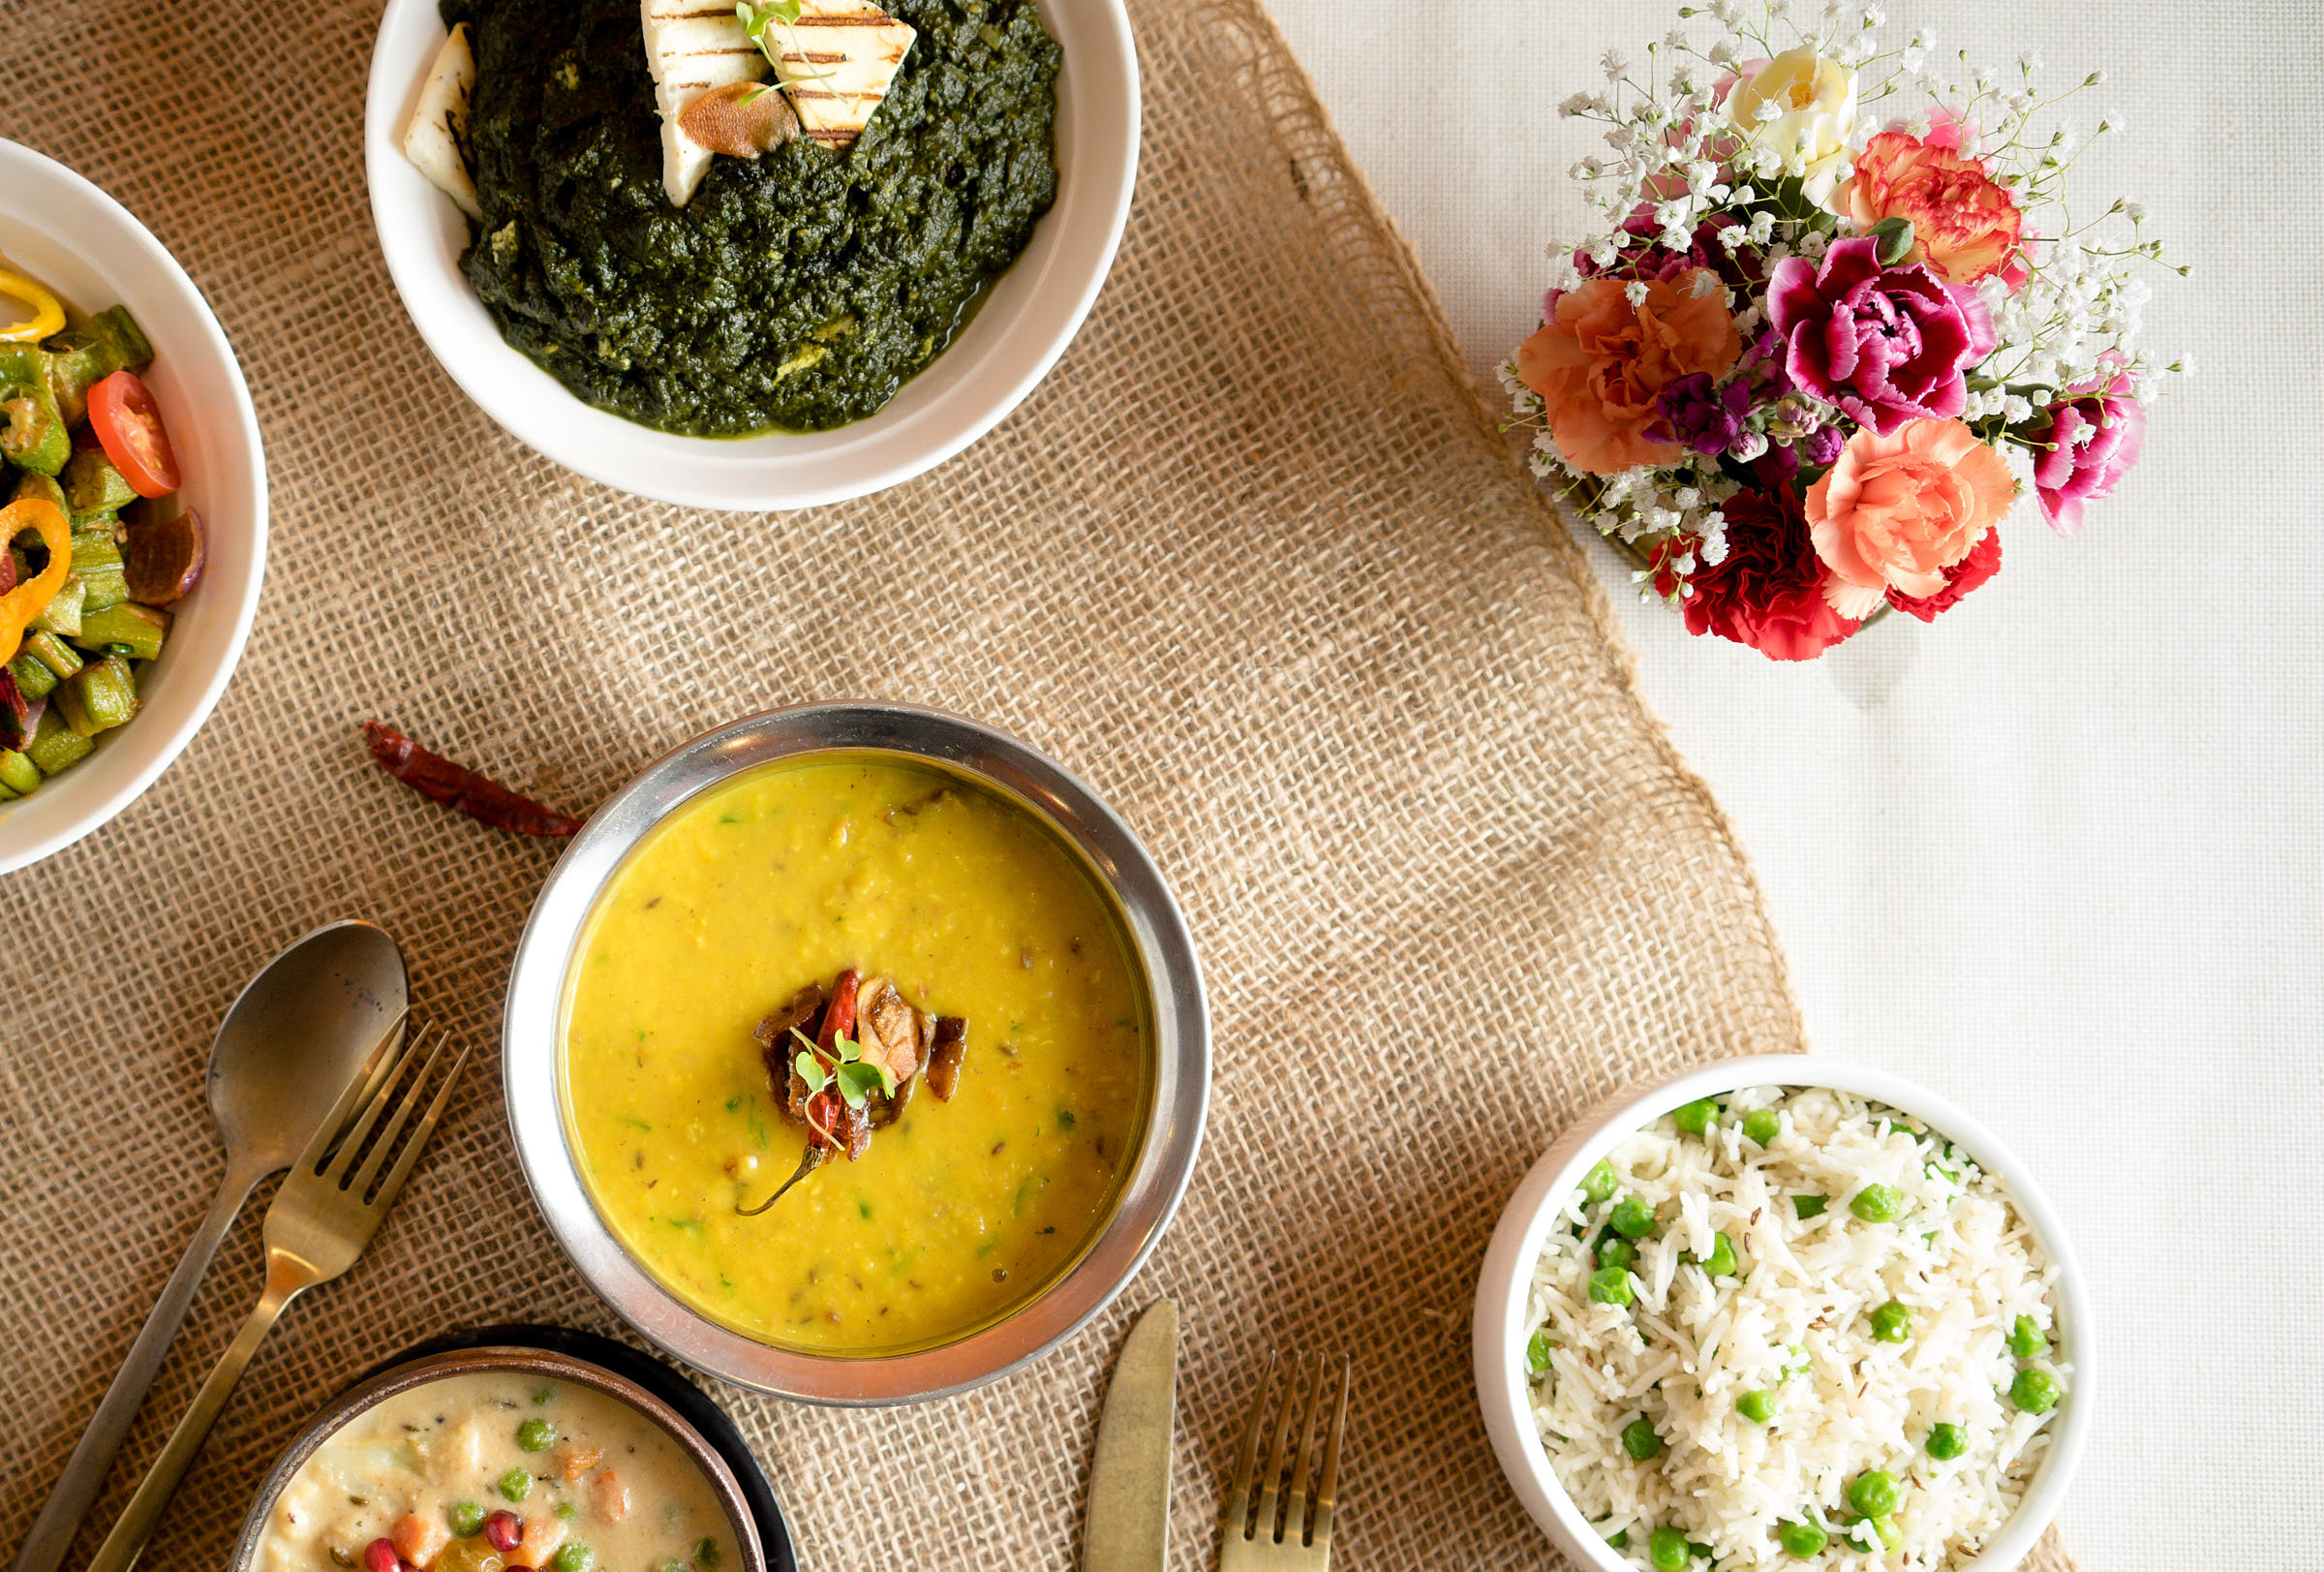 Indian Food Dinner Table Flat Lay Photo